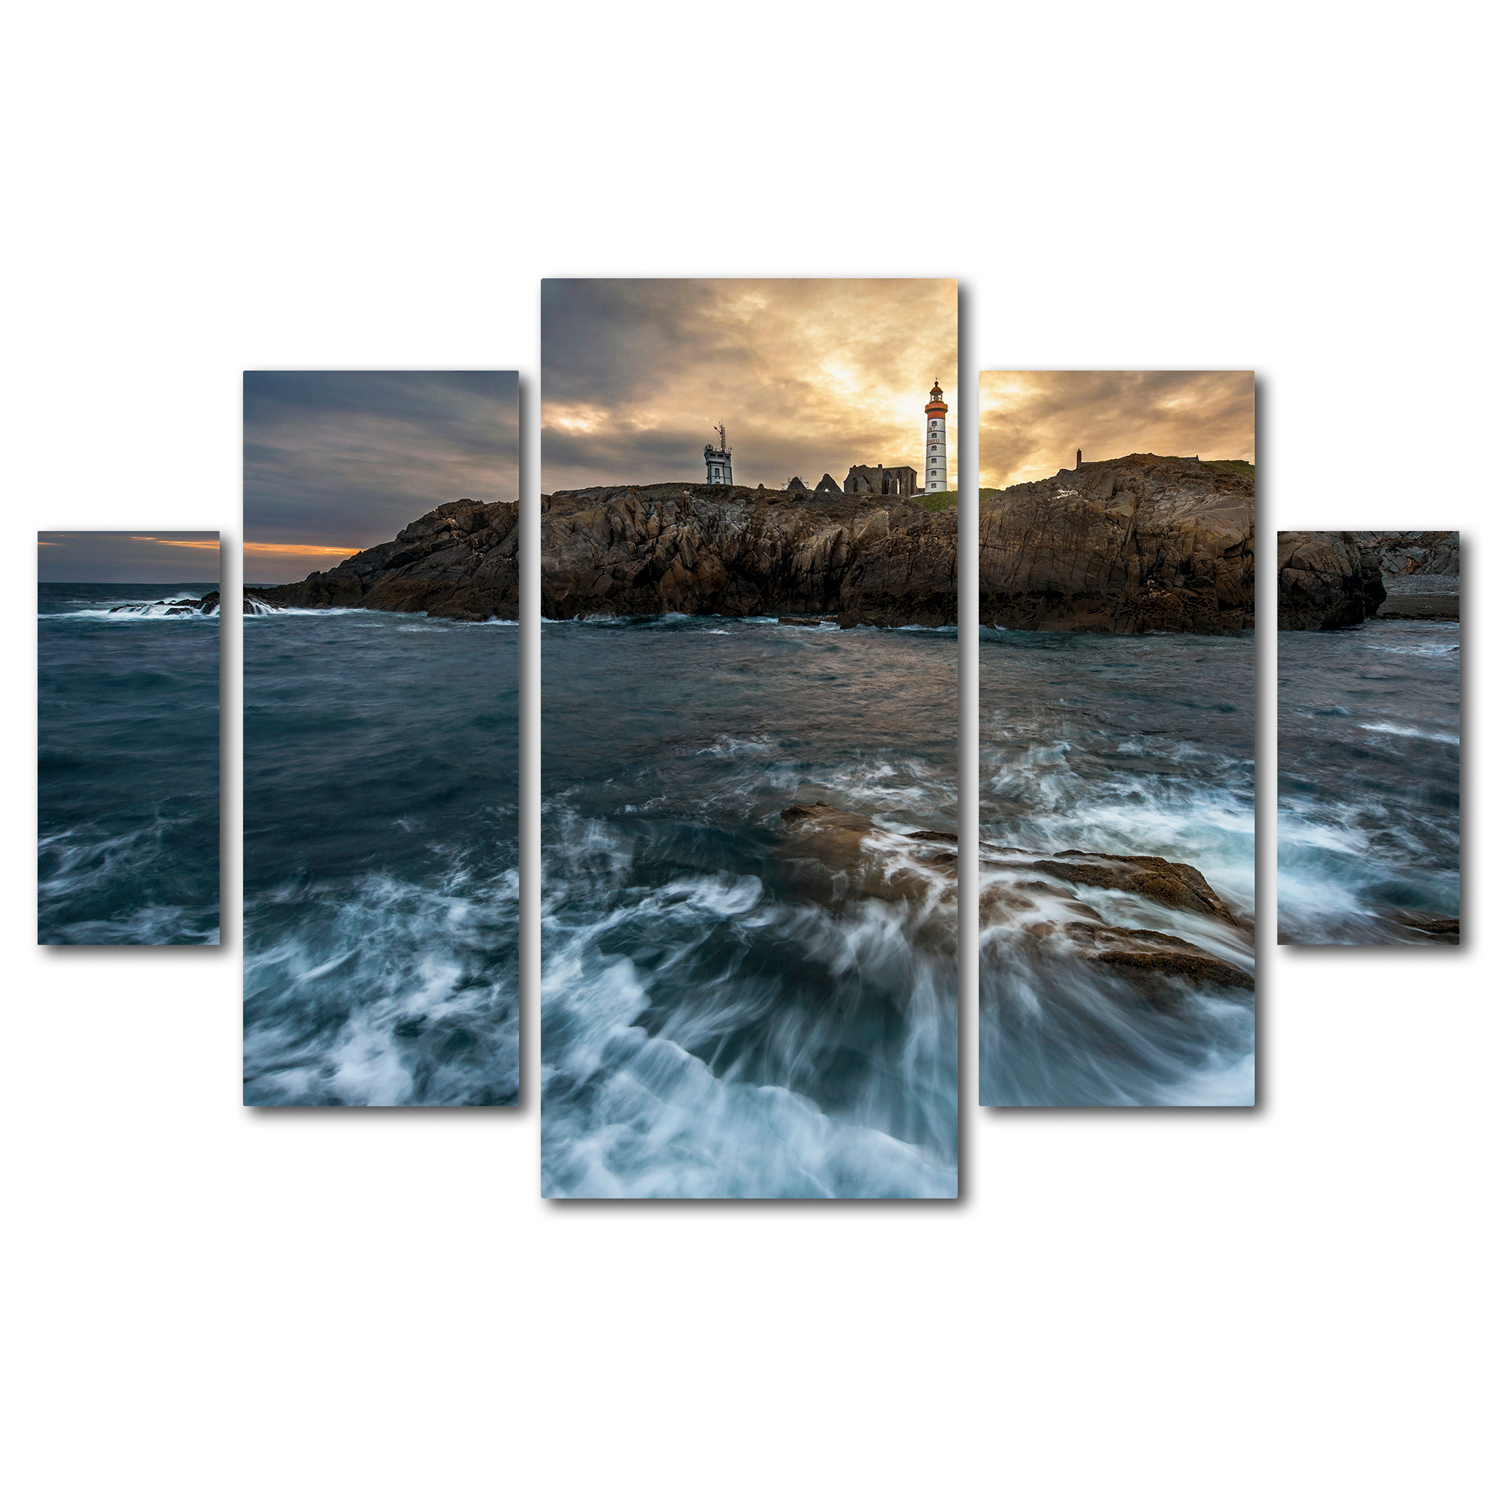 The Lighthouse Wall Art Set of 5